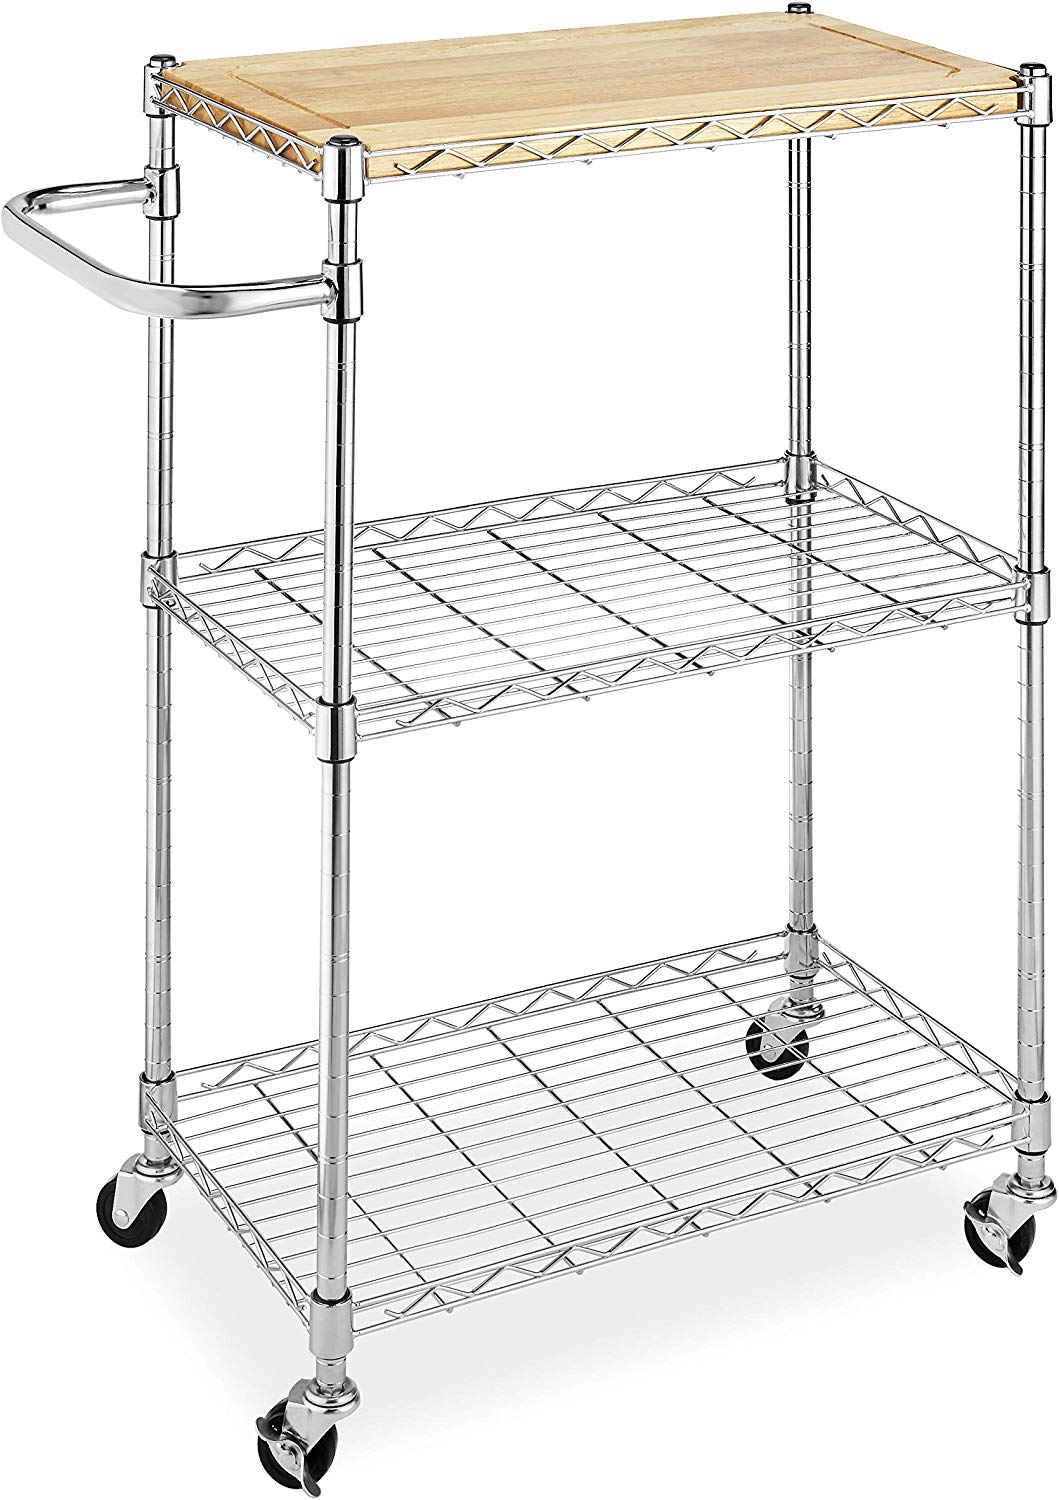 Whitmor supreme kitchen cart with wheels